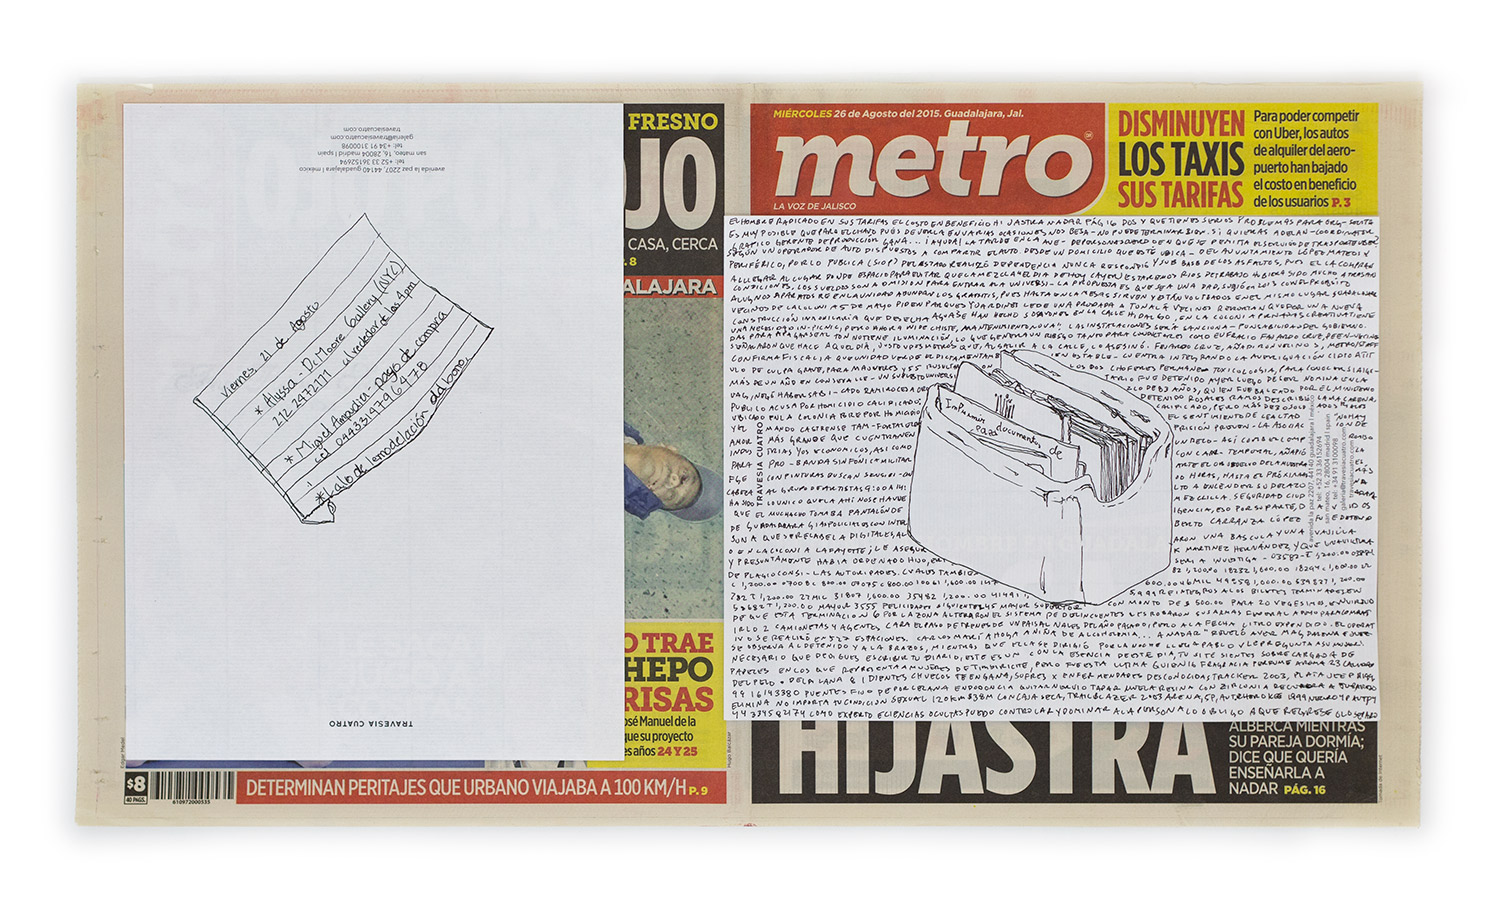 Political Drawing (Metro: Guadalajara, Mexico, Miércoles 26 Agosto 2015)   2015  Ink on paper, daily newspaper  12 1/2 x 22 3/4 inches   Drawings, 2014–    Disponibles, 2015